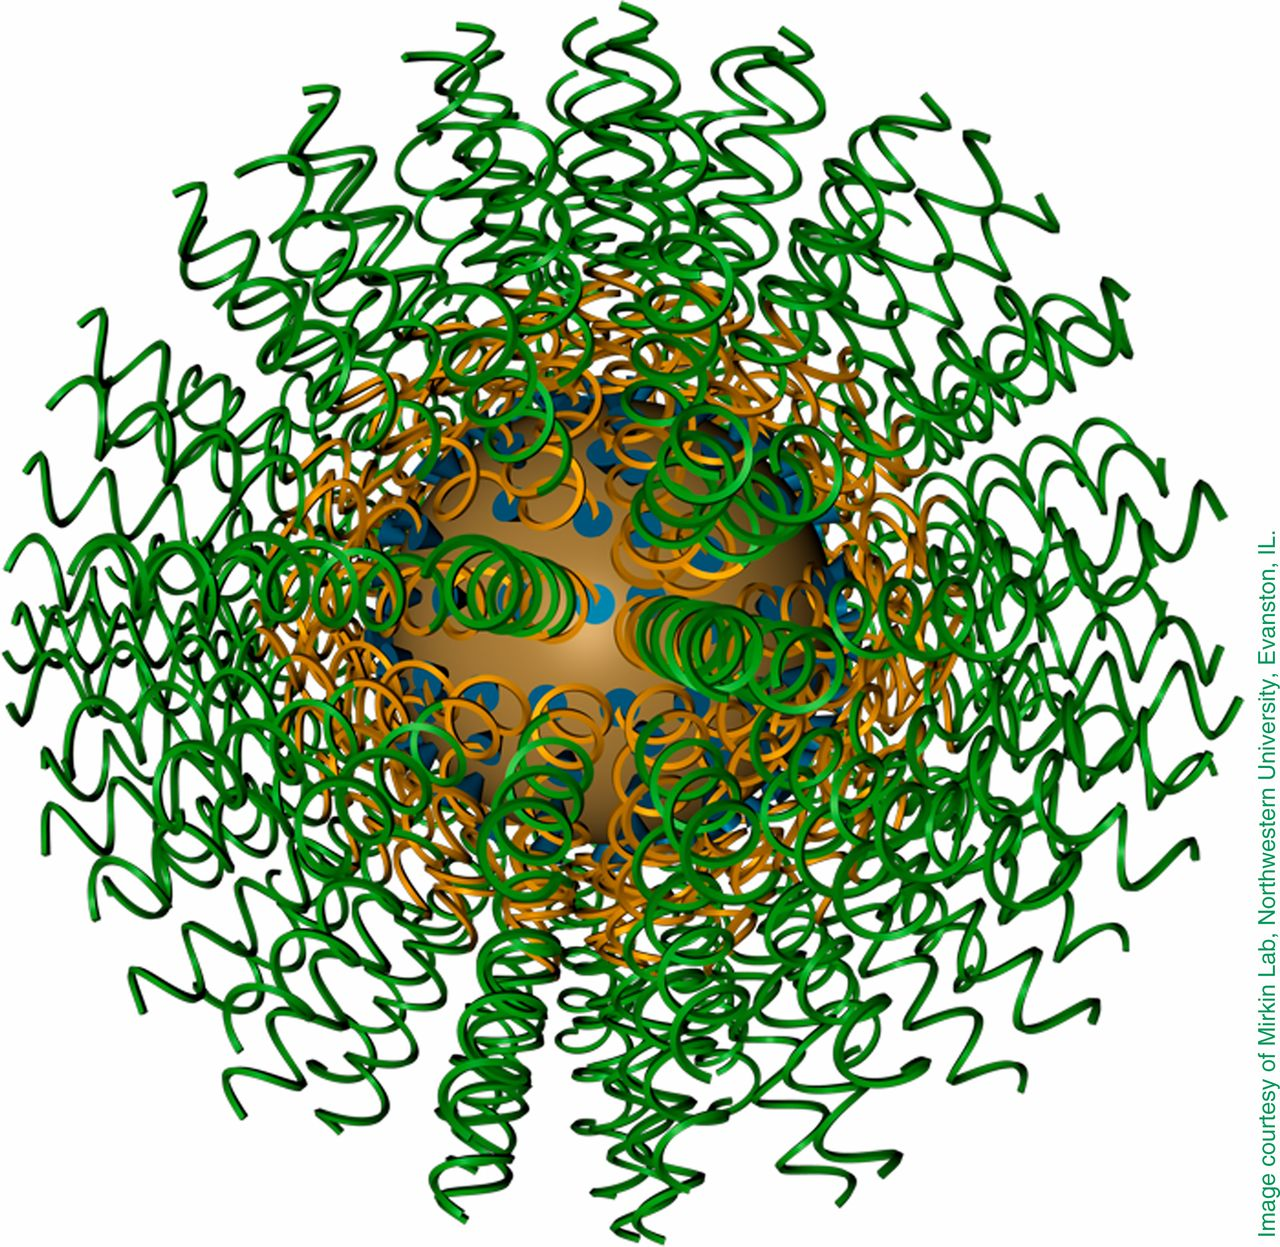 Spherical gold nucleic acid nanoparticle. Source: PNAS